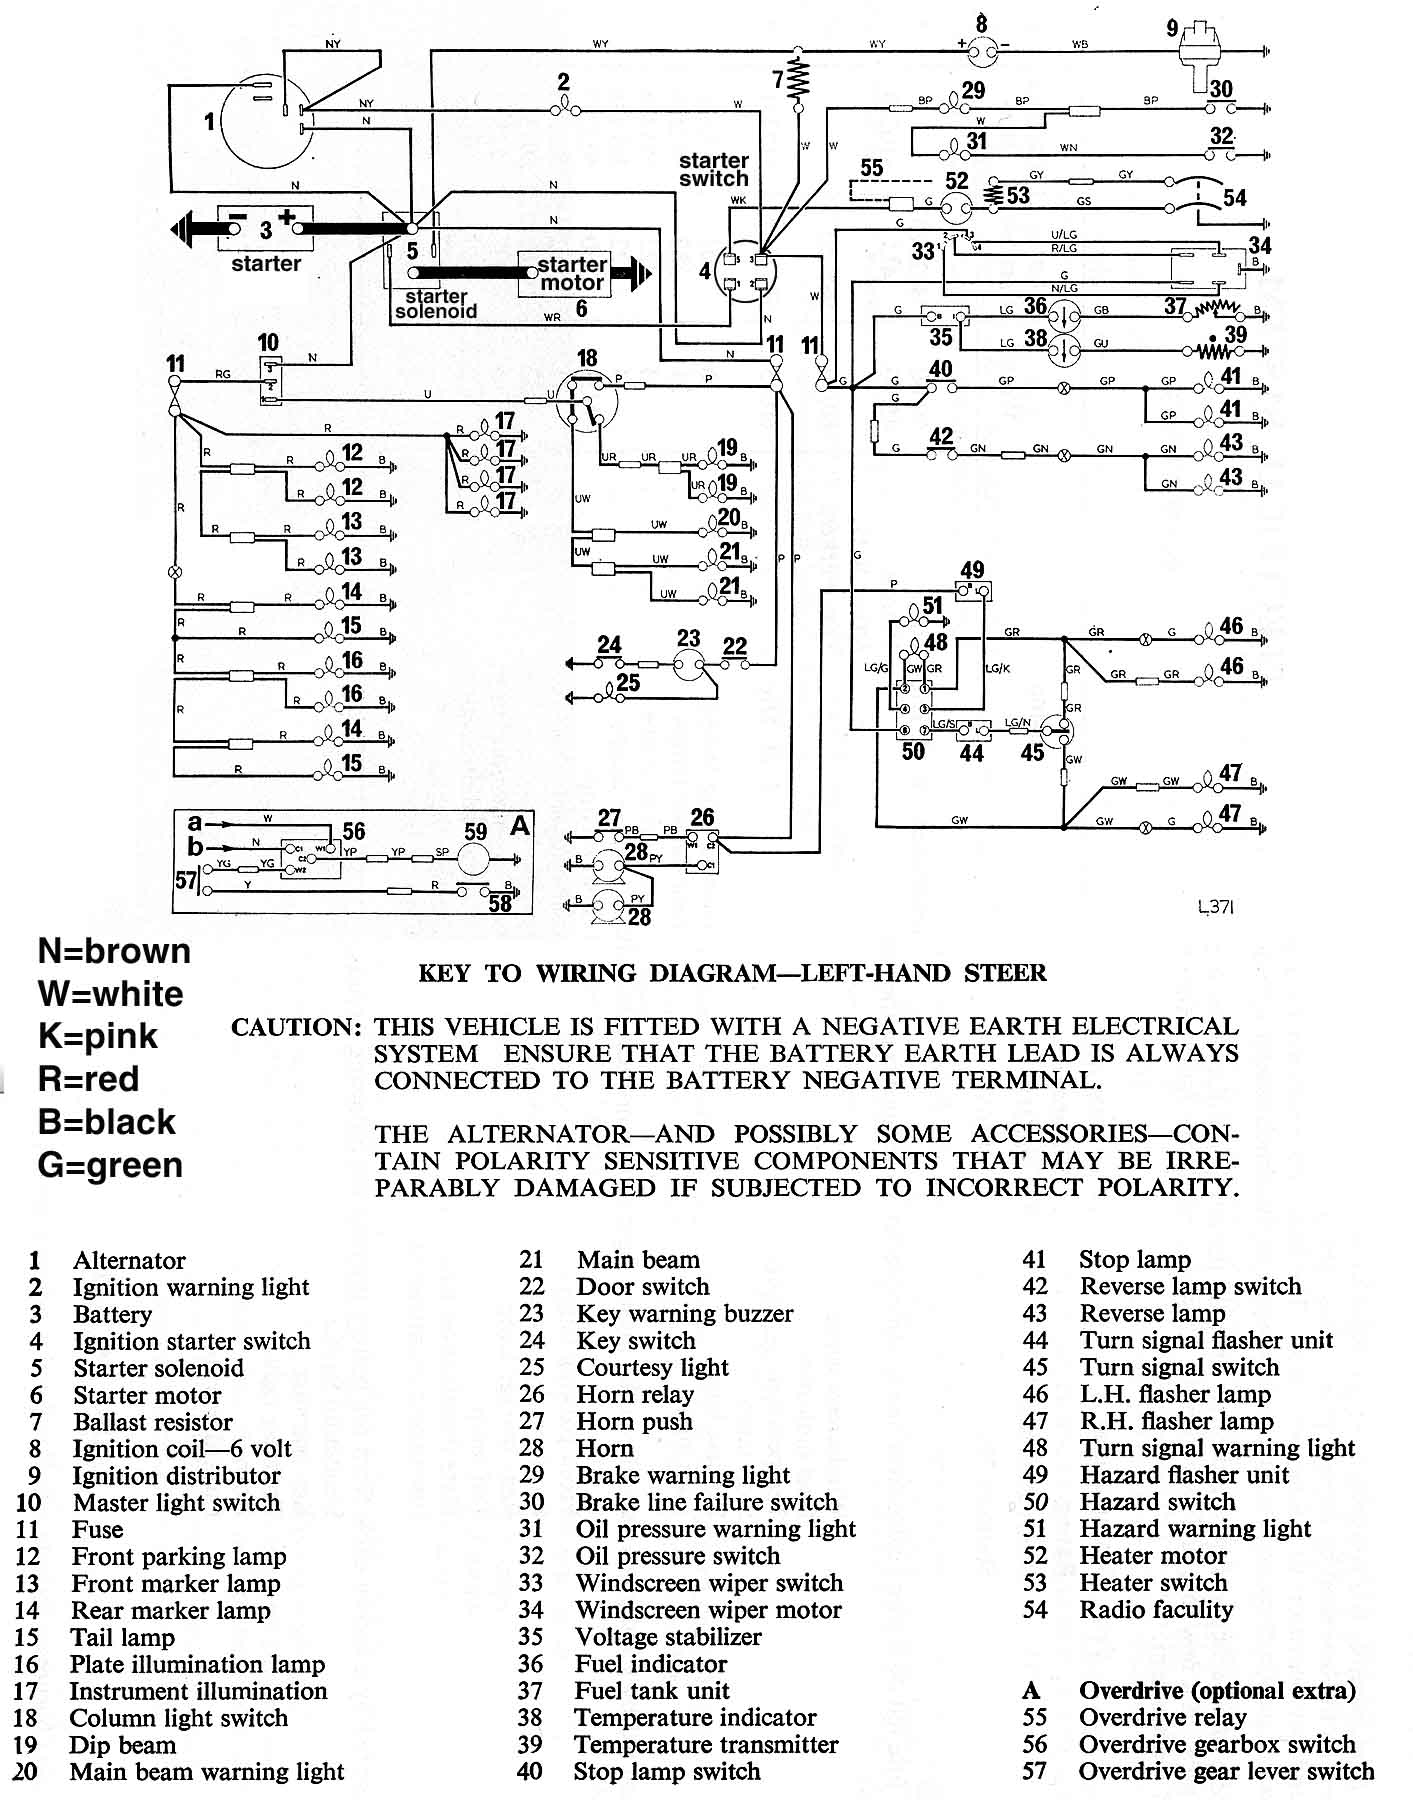 MKIVwire coil and dizzy spitfire & gt6 forum triumph experience car Basic Electrical Wiring Diagrams at gsmx.co